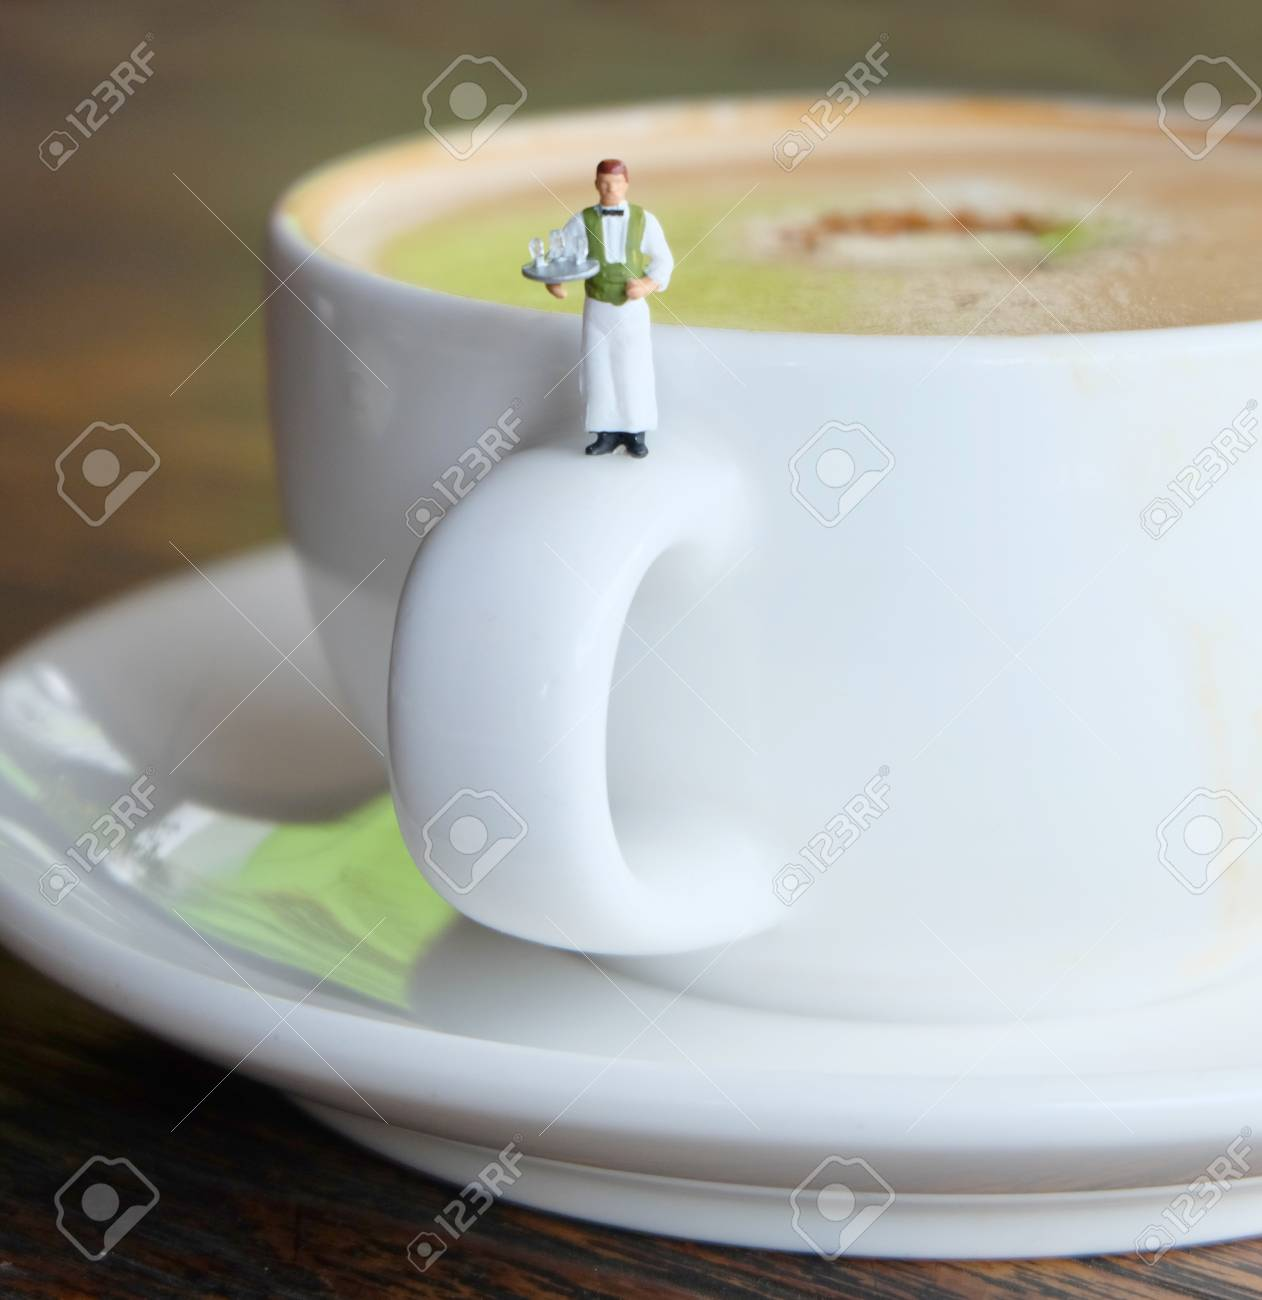 Miniature Waiter Serving a Cup of Hot Coffee Stock Photo - 82873267